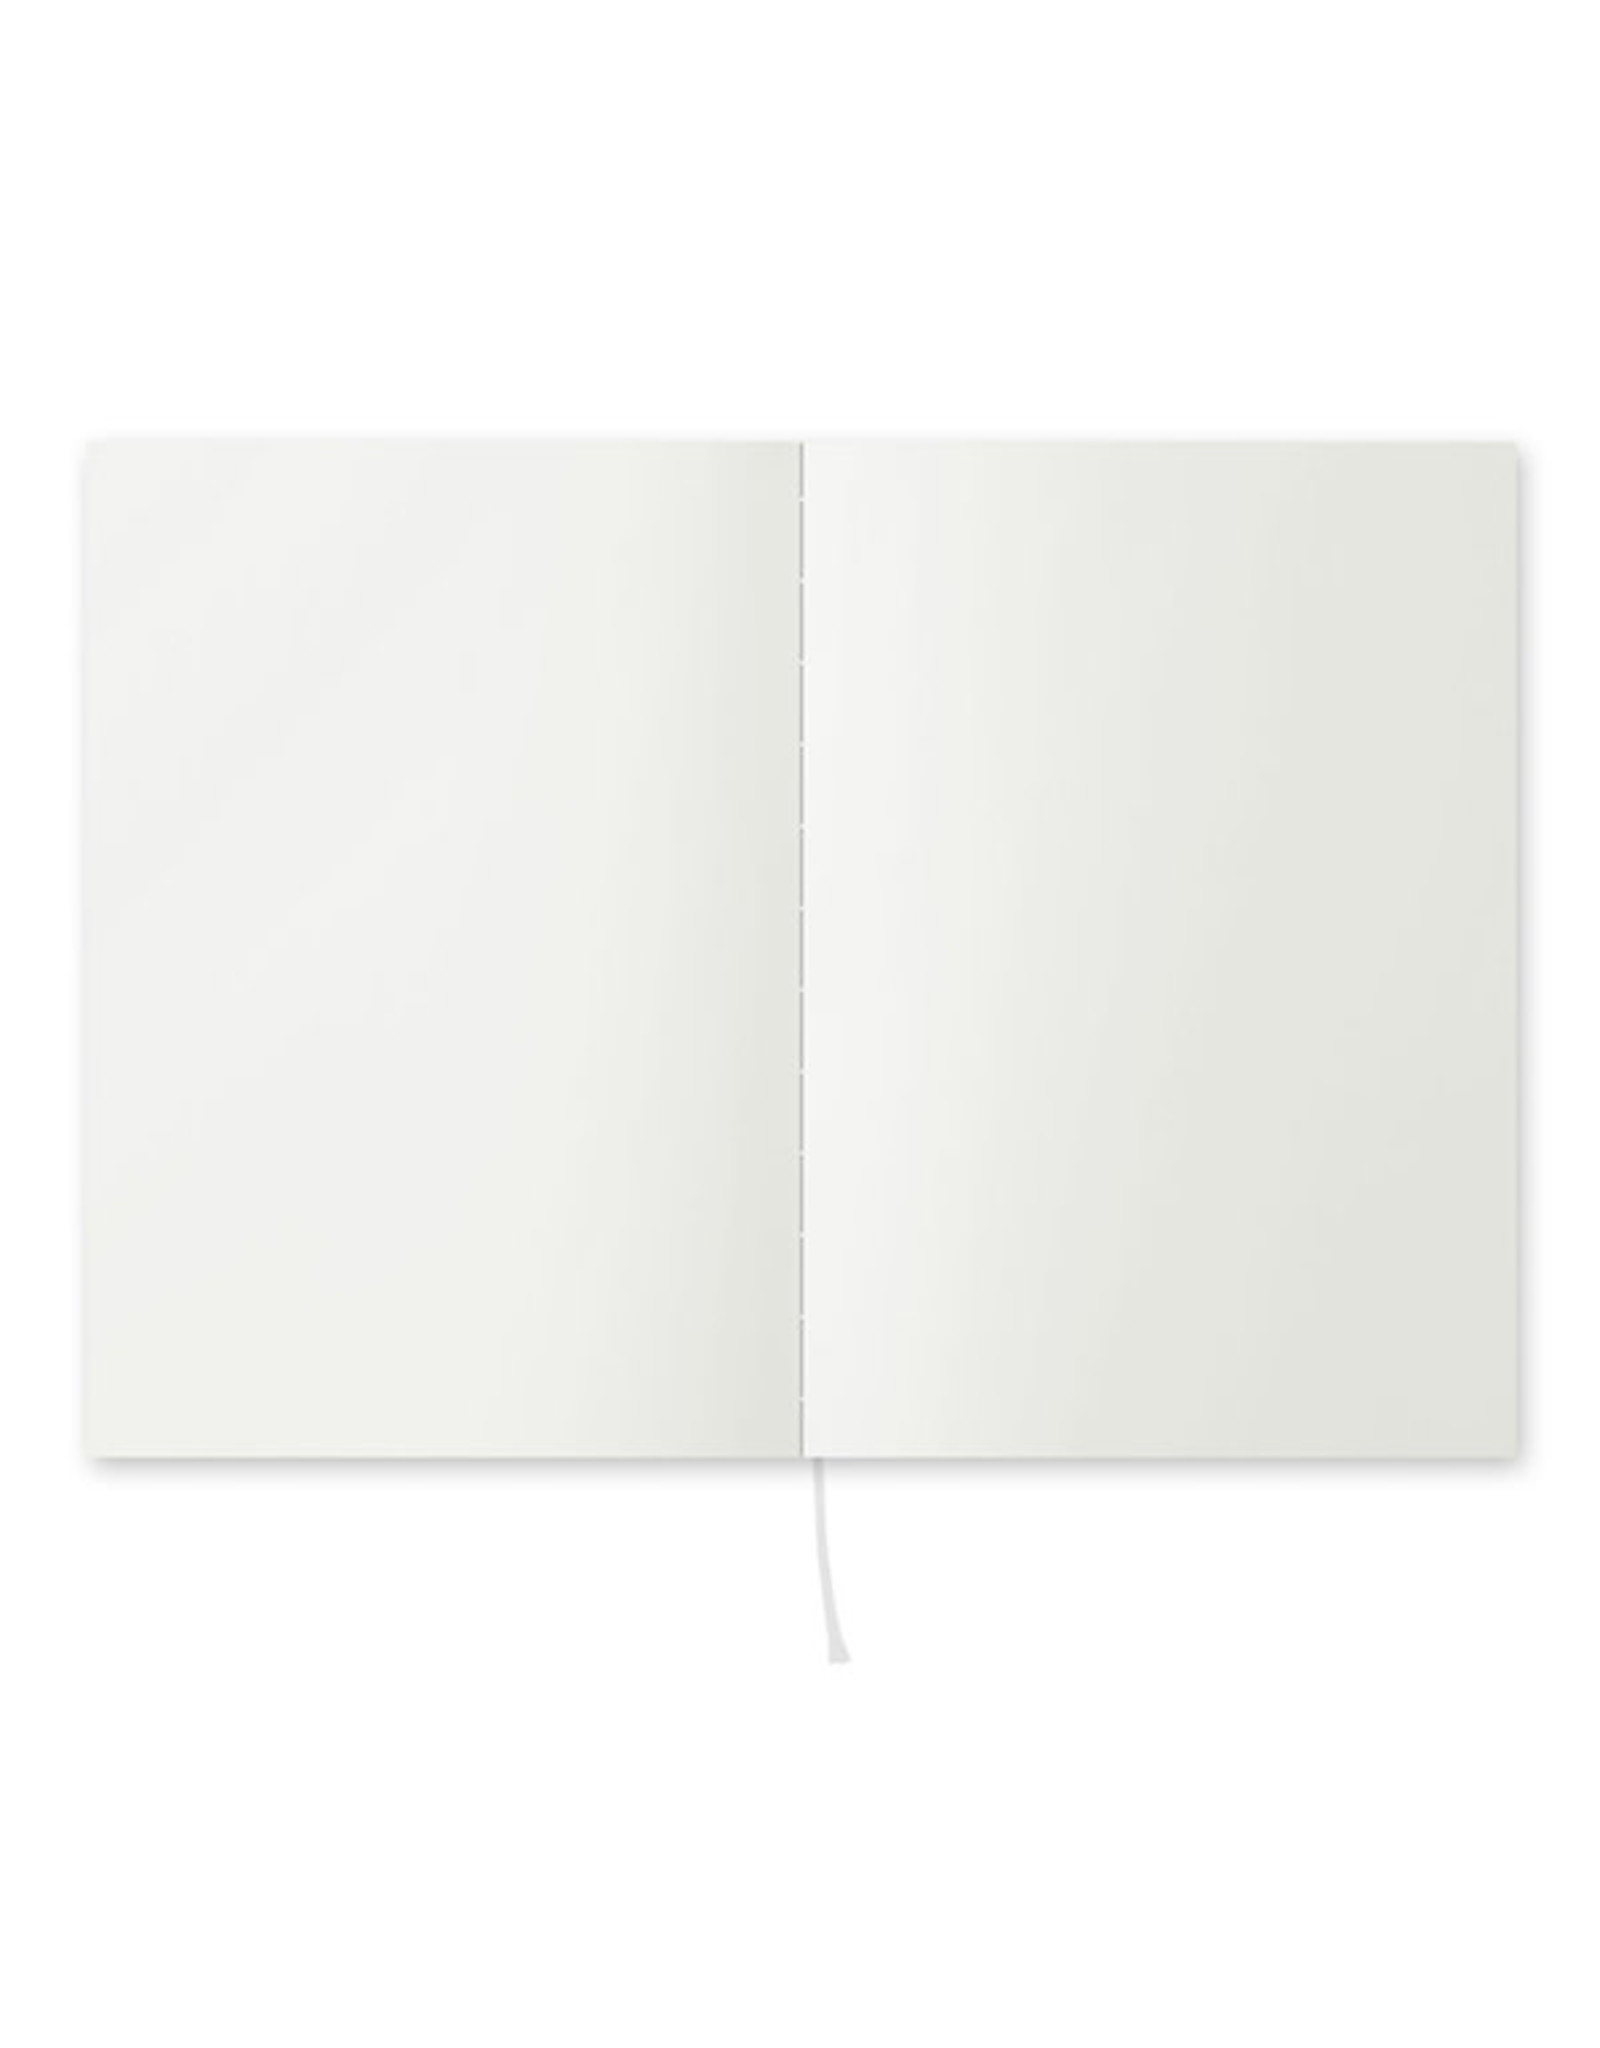 Designphil Inc. MD COTTON NOTEBOOK A5